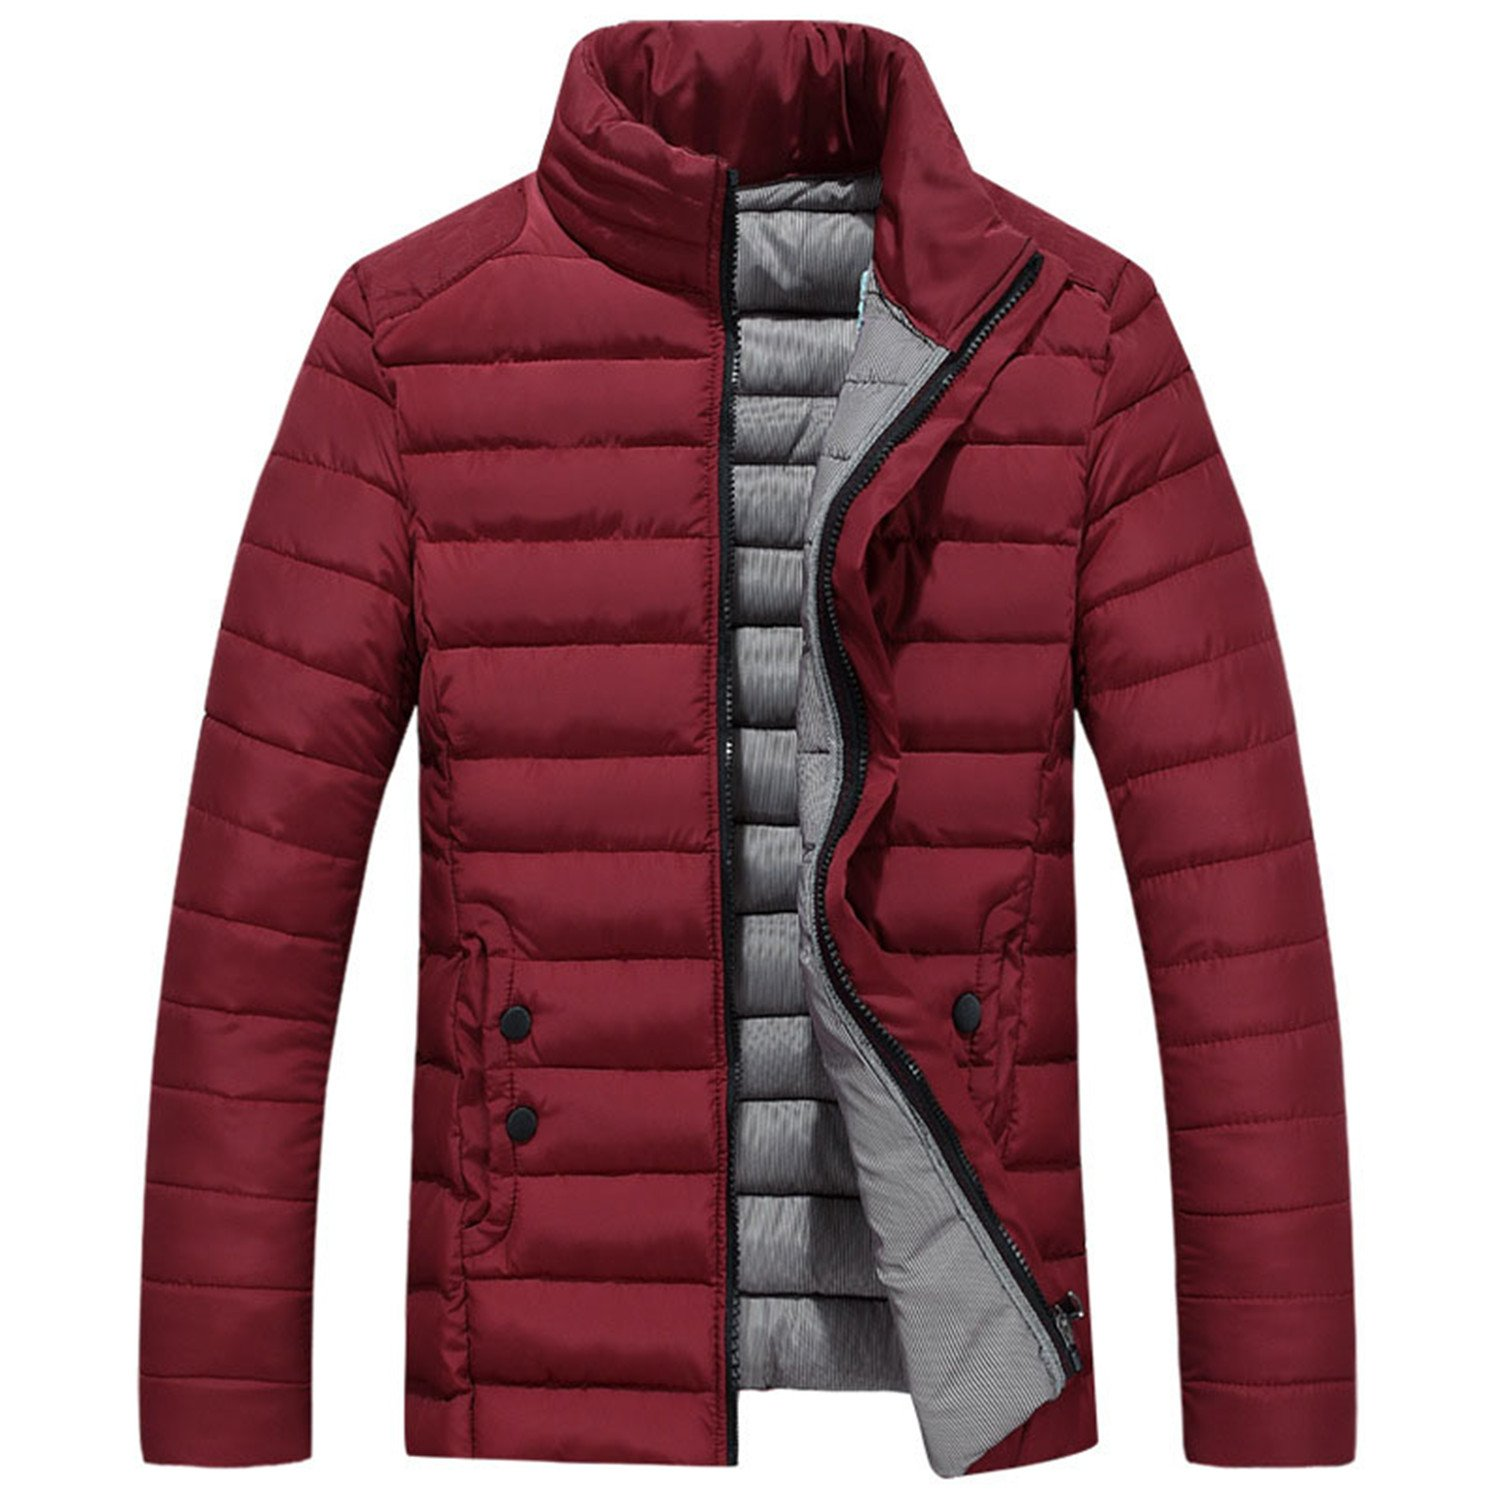 Sonjer Mens Parka Coat 4XL 5XL New Men Winter Jacket Down Cotton Padded Coat Stand Collar Quilted Jacket Male